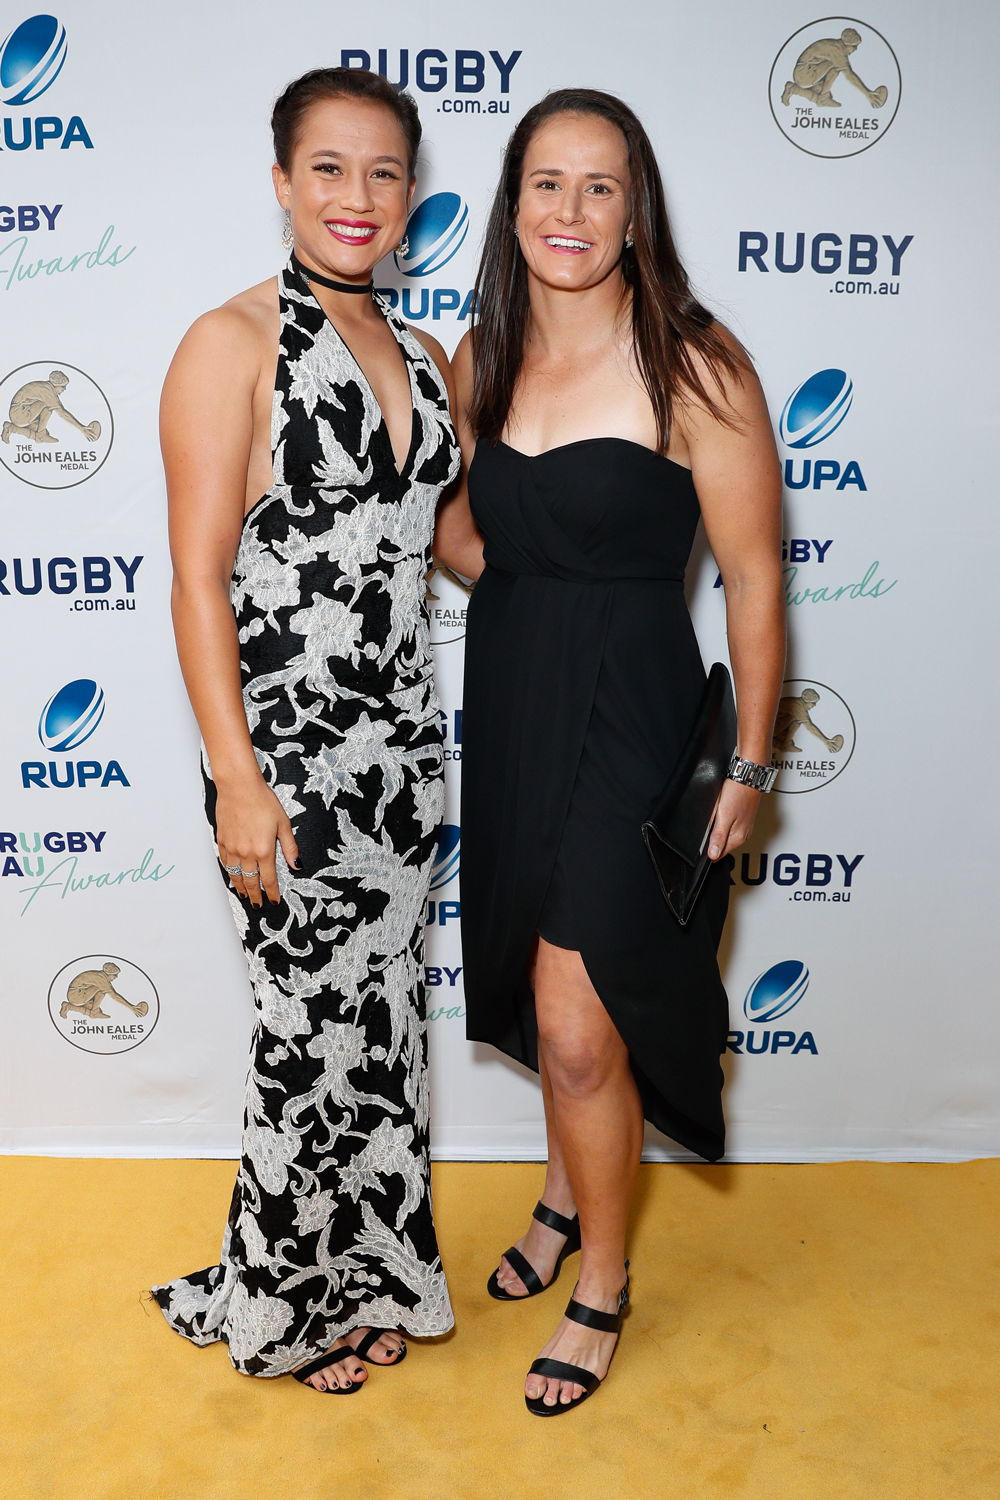 Aussie Sevens players Page McGregor and Shannon Parry at the Rugby Australia Awards. Photo: Getty Images